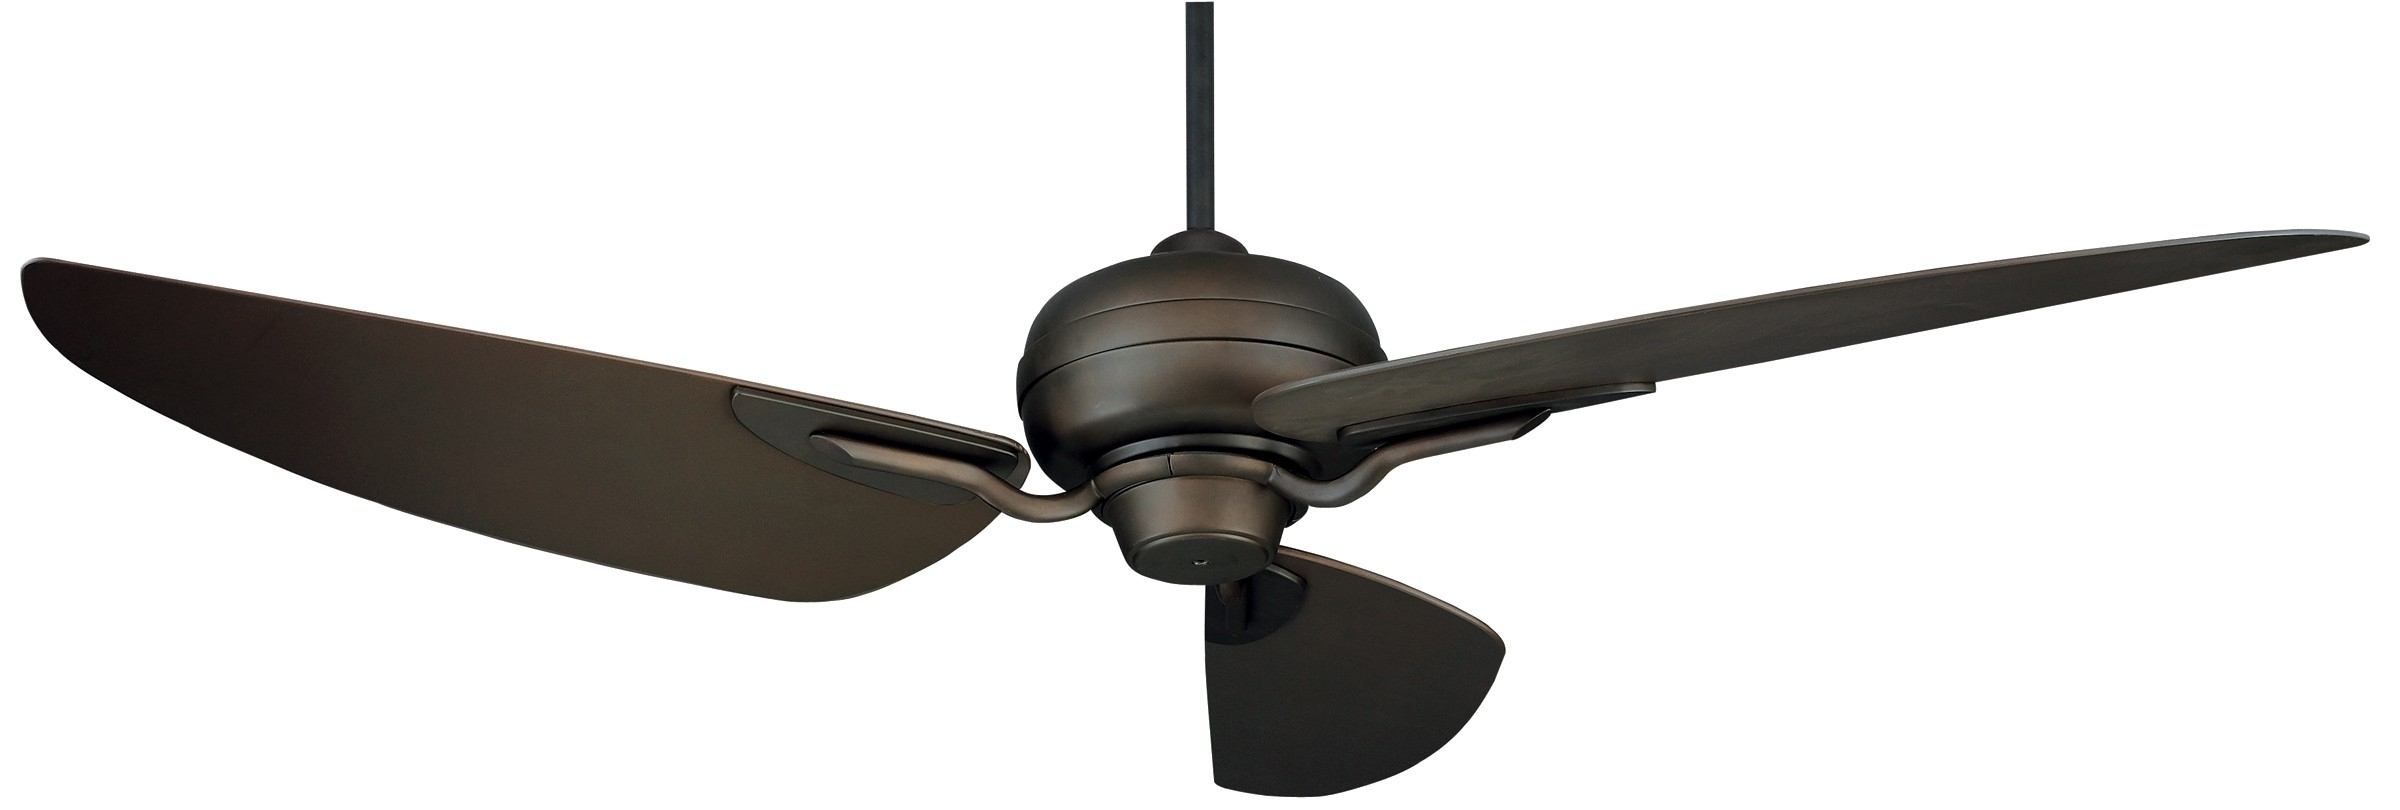 Fashionable Outdoor Fans Wet Rated – Photos House Interior And Fan Throughout Wet Rated Emerson Outdoor Ceiling Fans (View 11 of 20)